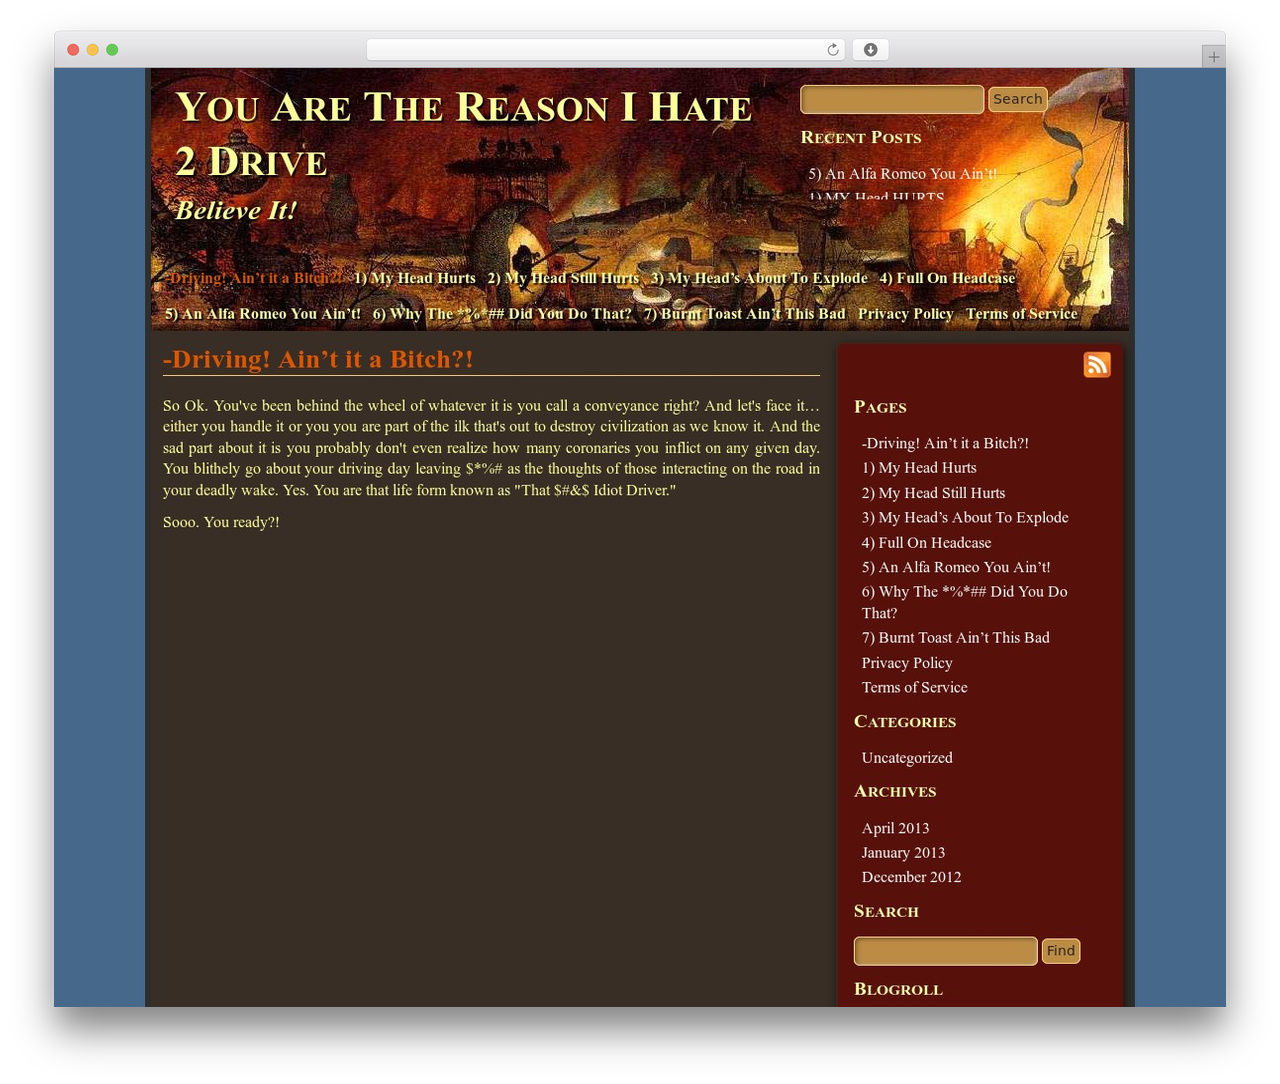 WP theme Mad Meg by BrokenCrust - yourethereasonihate2drive.com